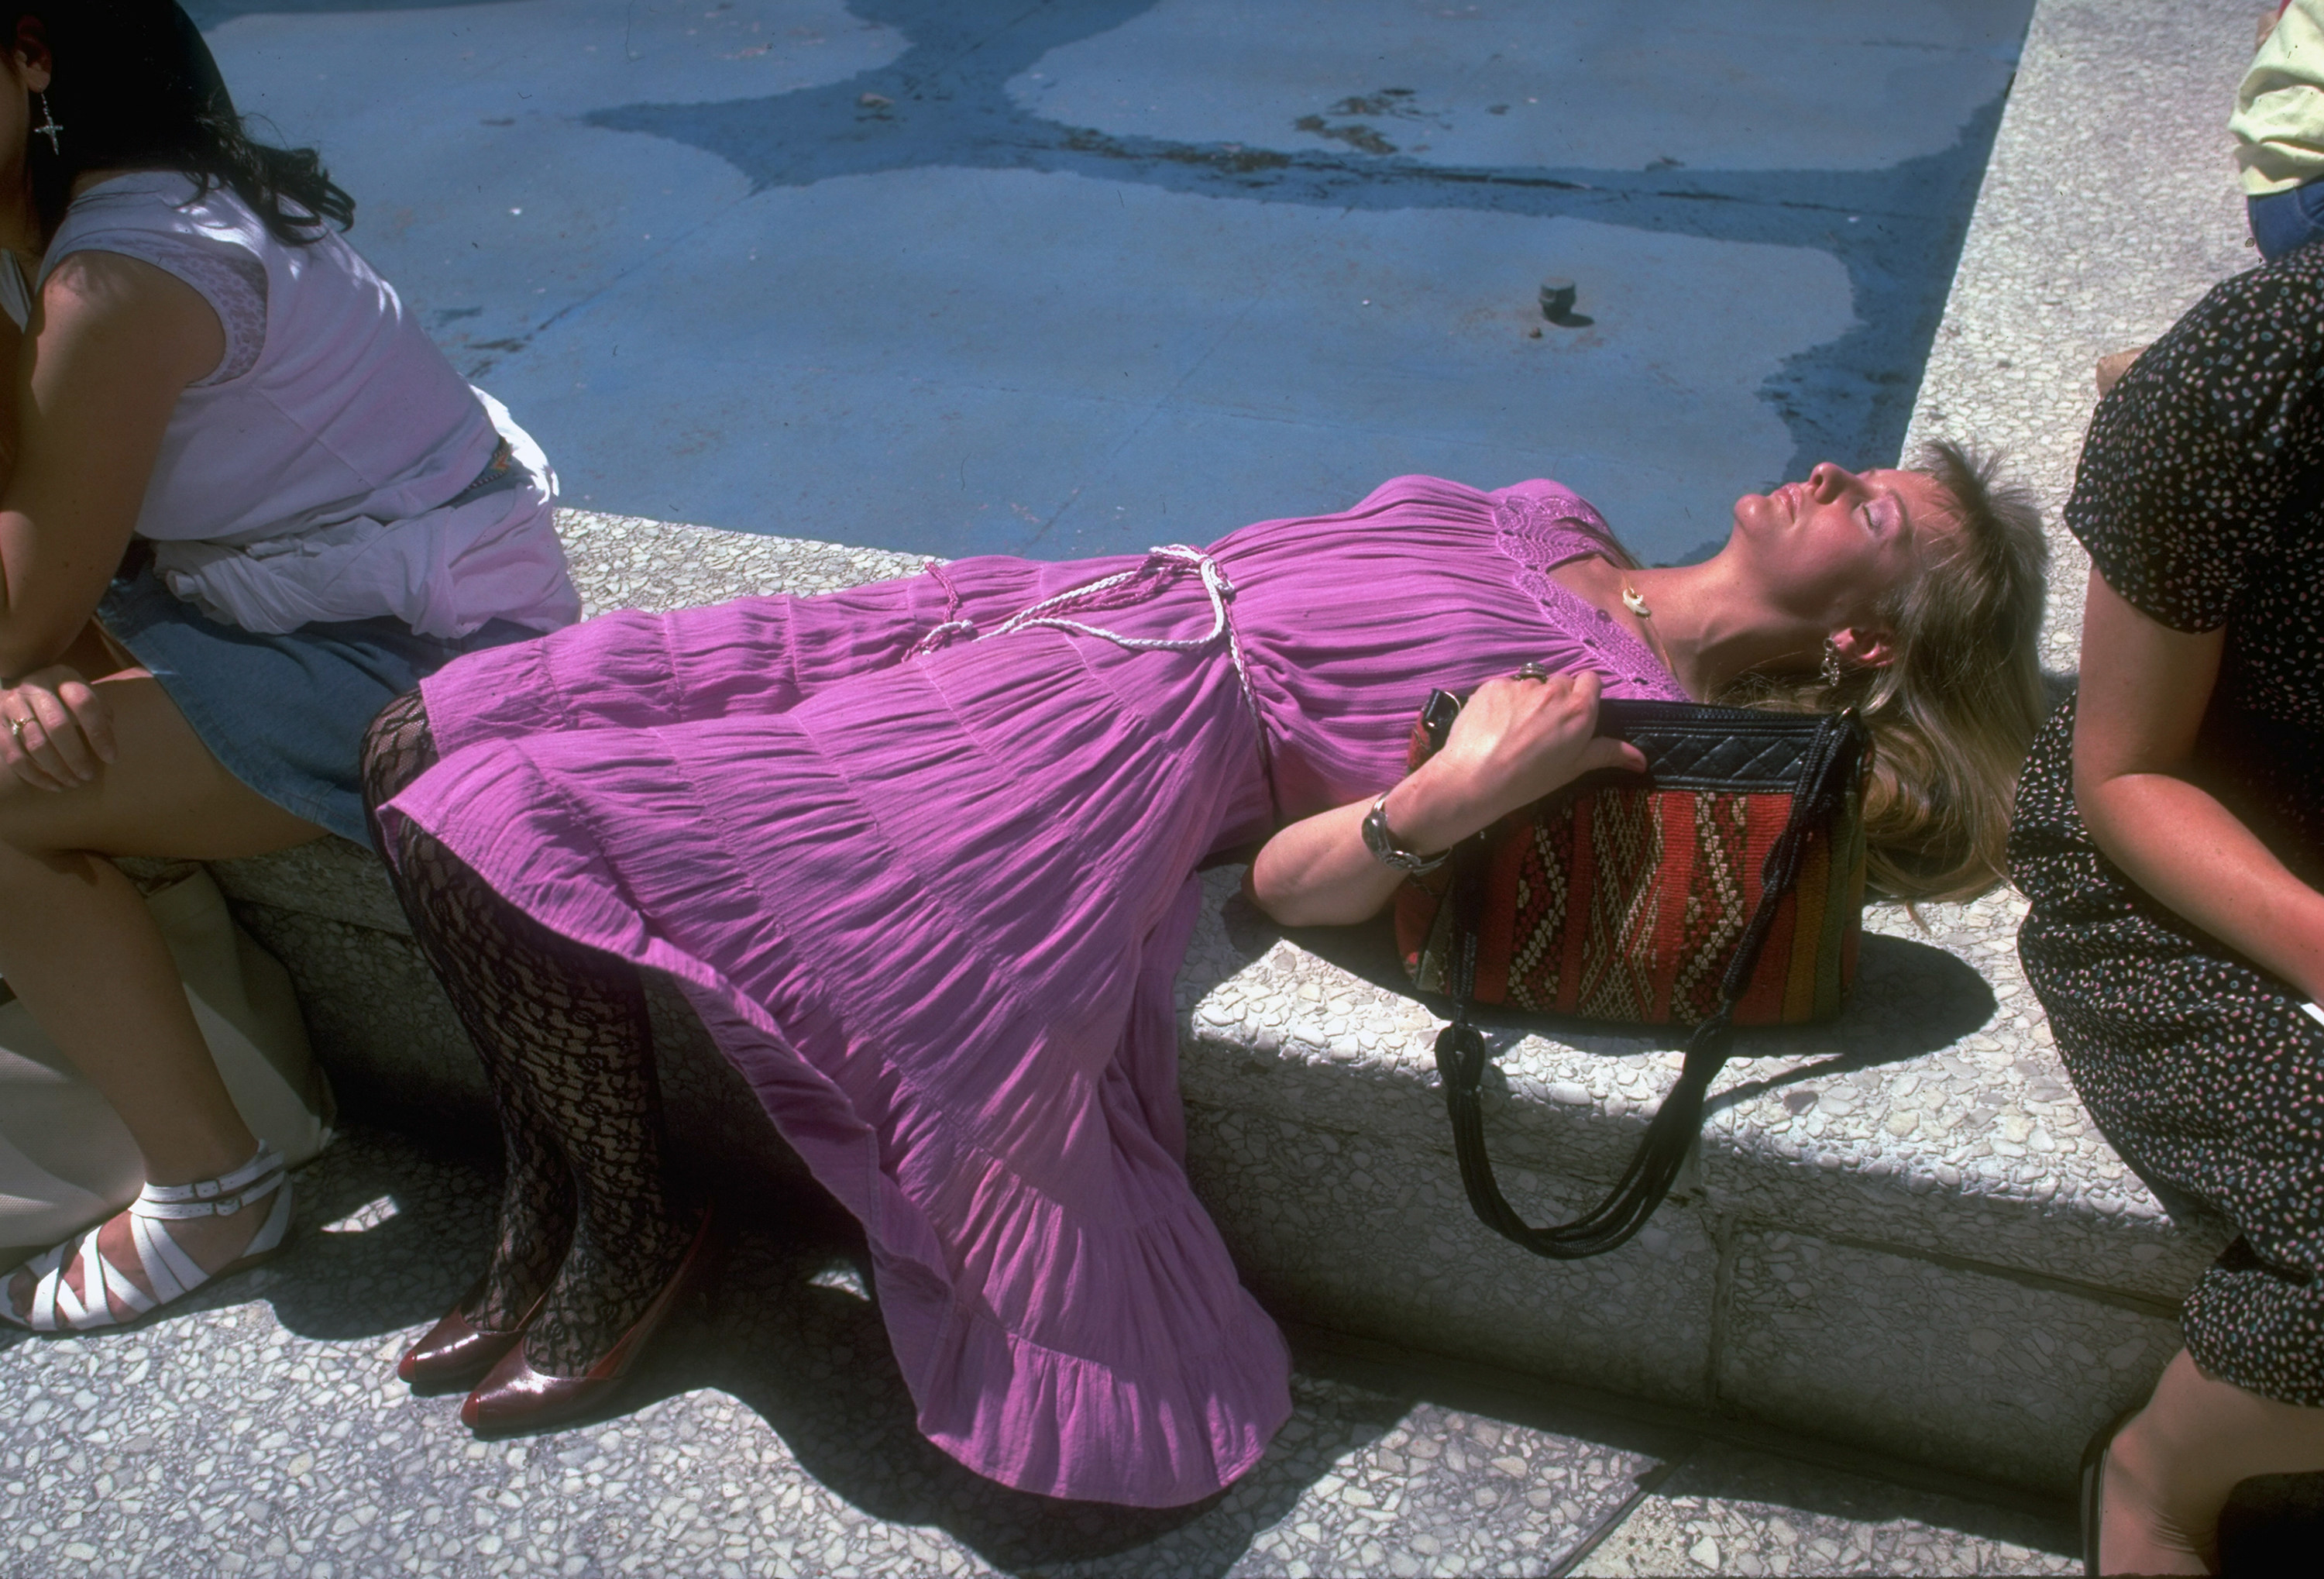 Pink dress-clad woman sunbathing with vigilant hand on her purse